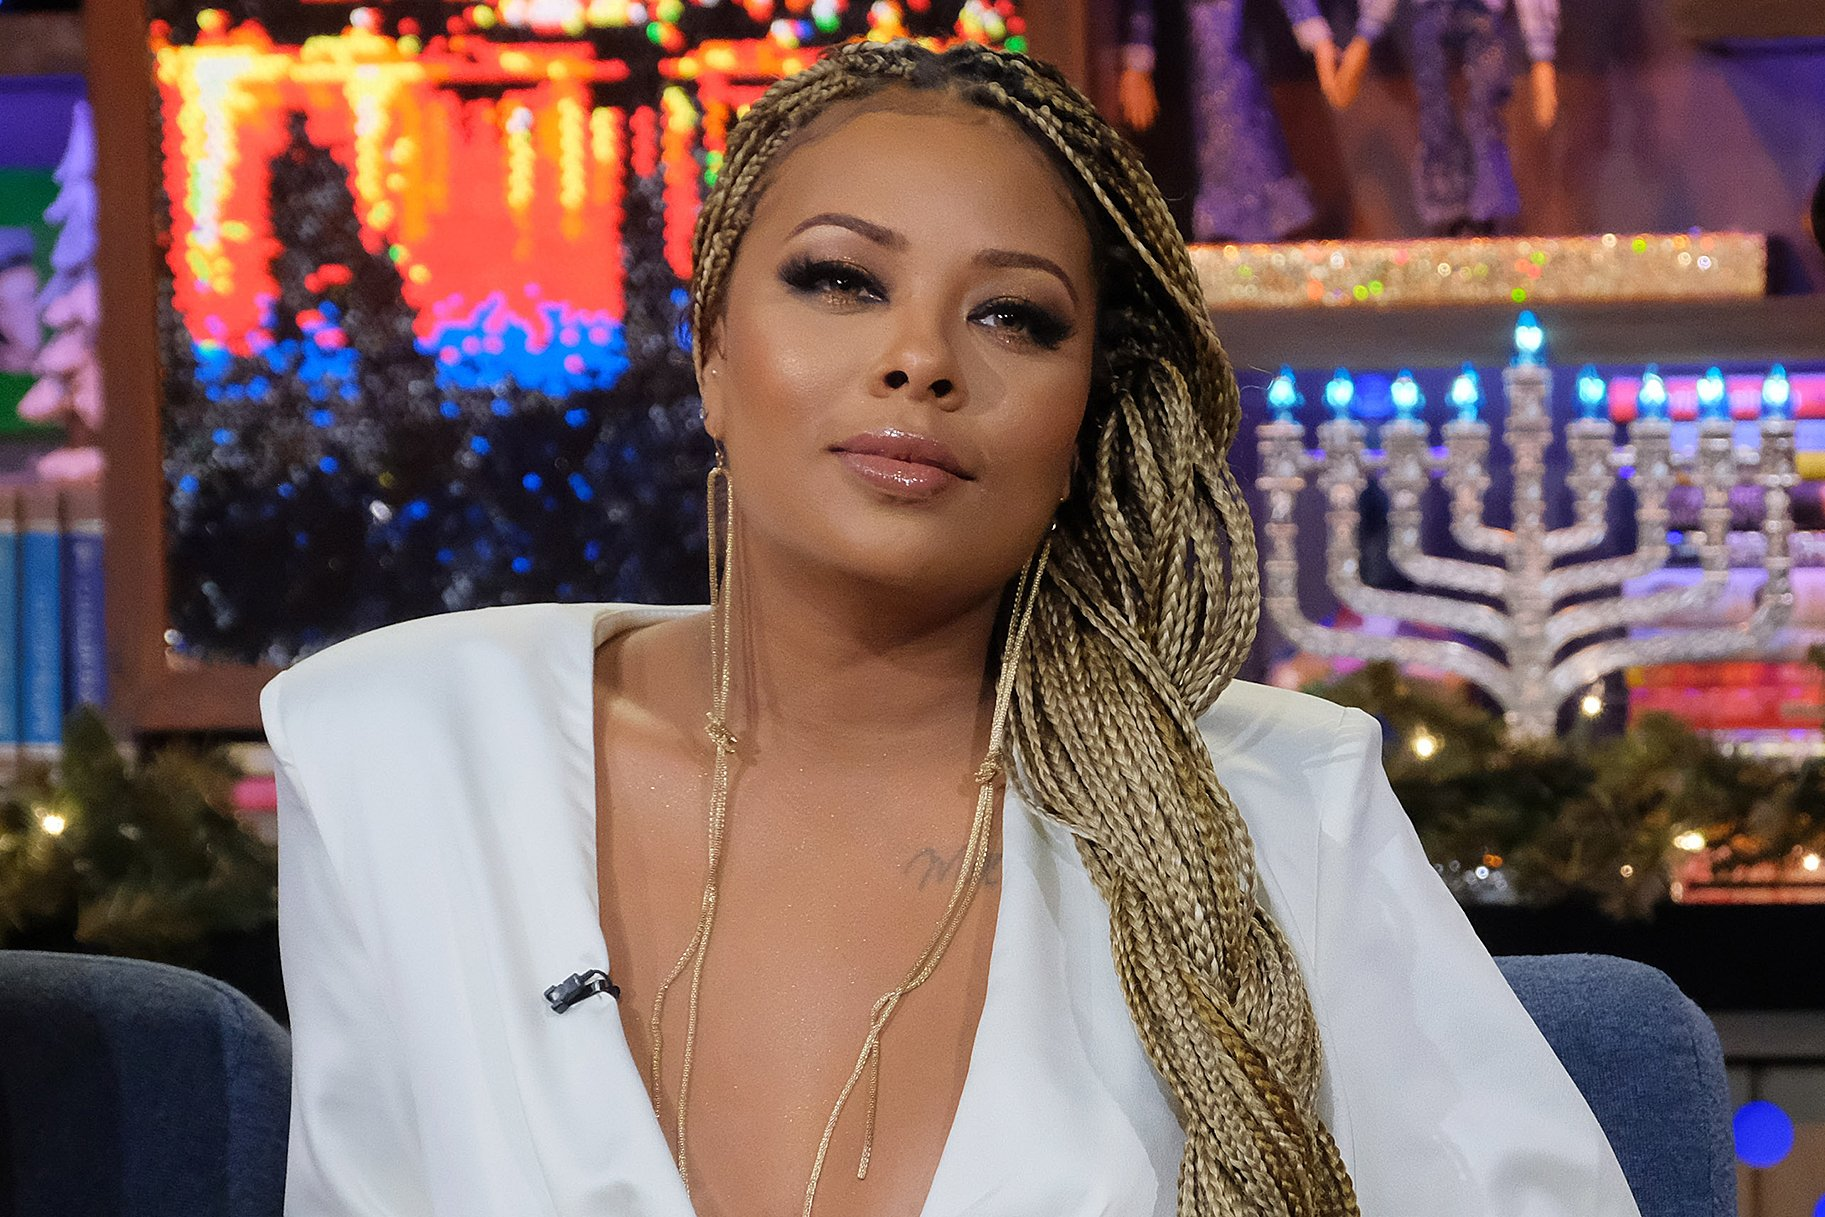 Eva Marcille Flaunts Her Flawless Skin In This Video – Fans Are In Awe